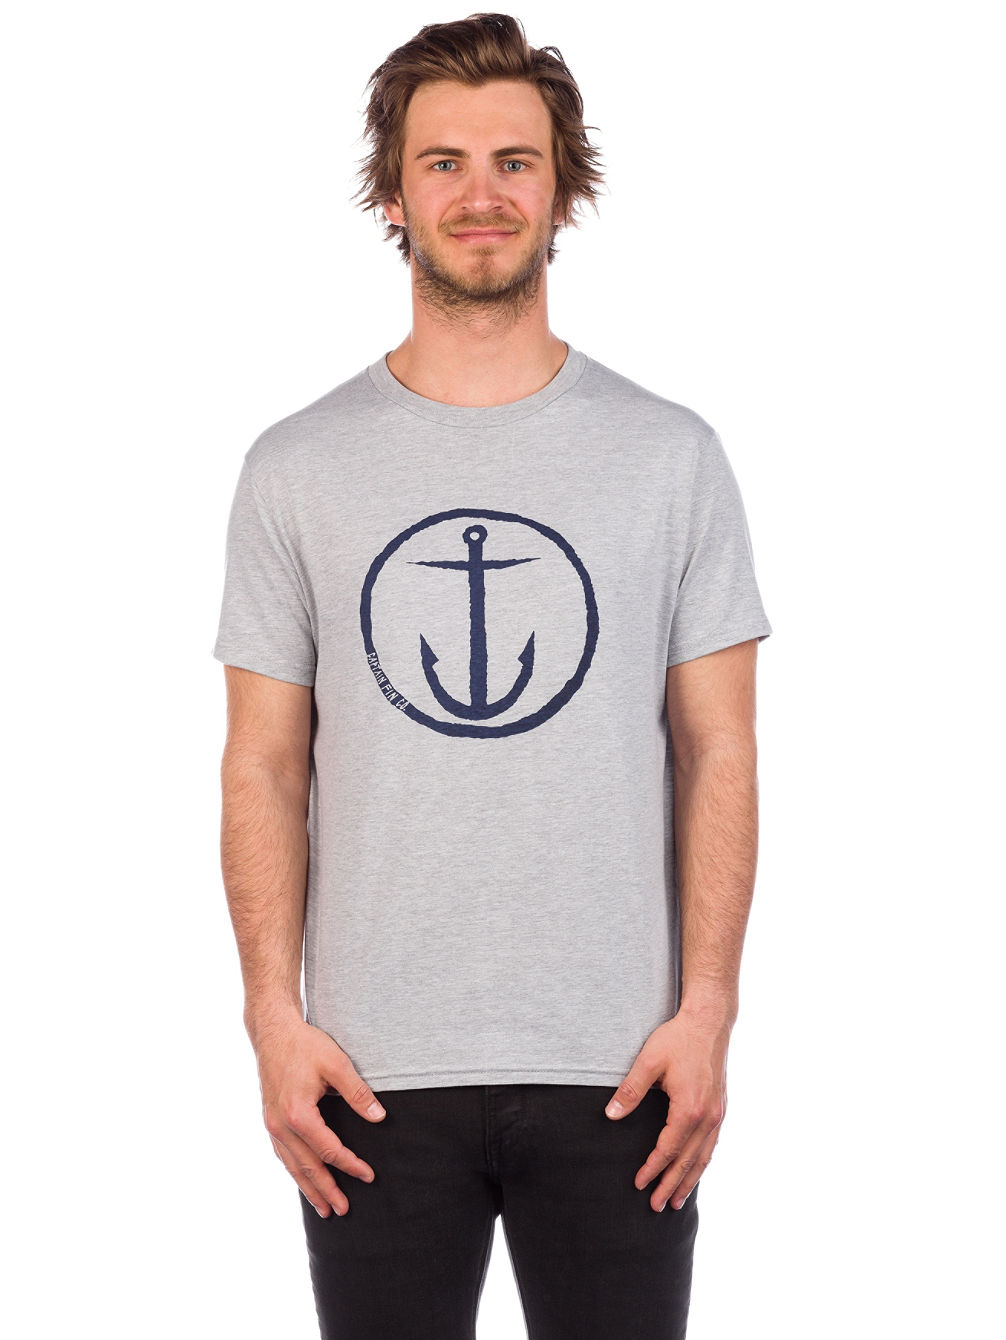 Original Anchor T-Shirt